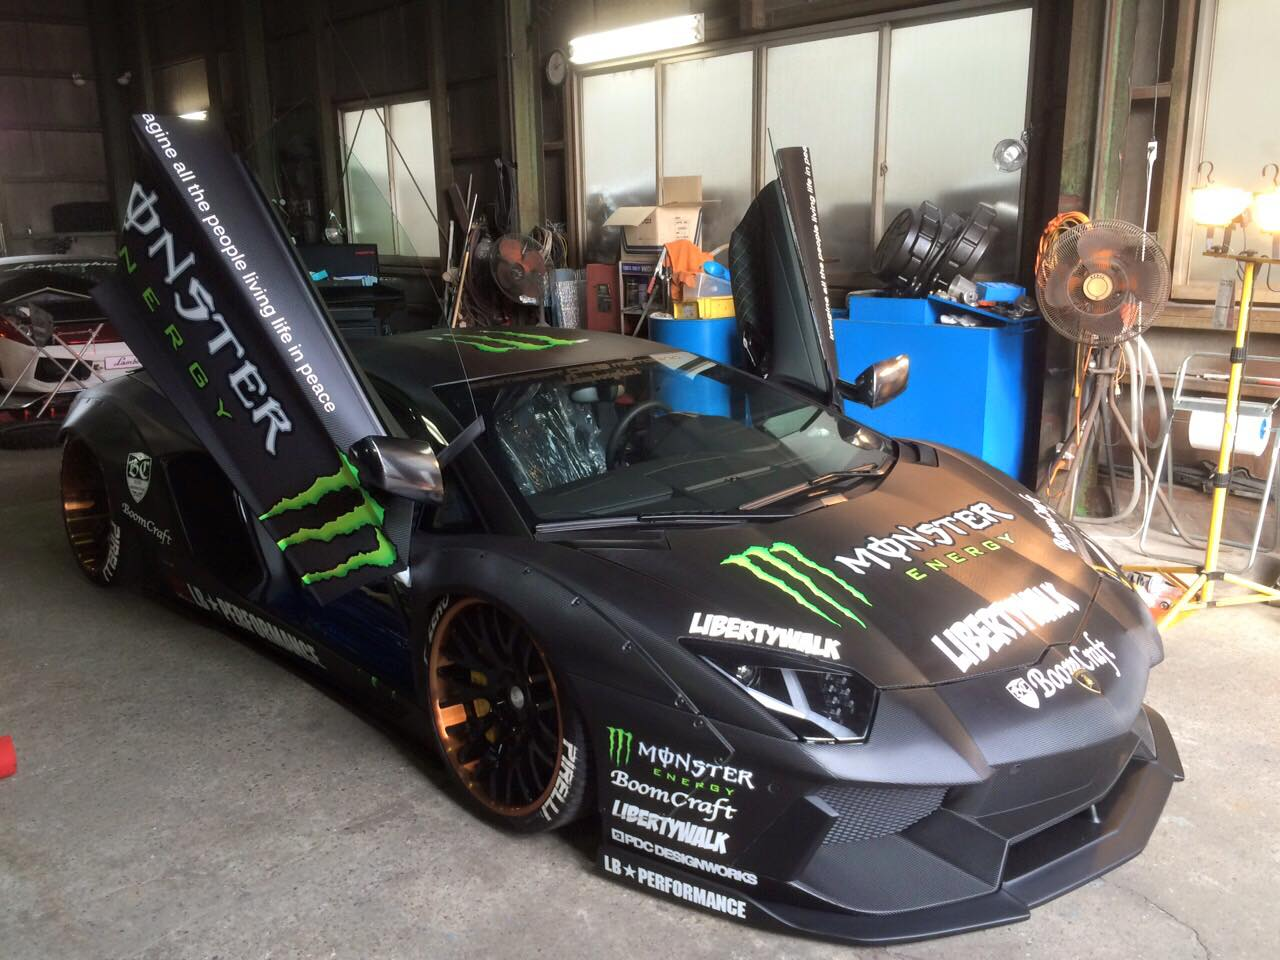 Liberty Walk Lamborghini Aventador With Monster Livery